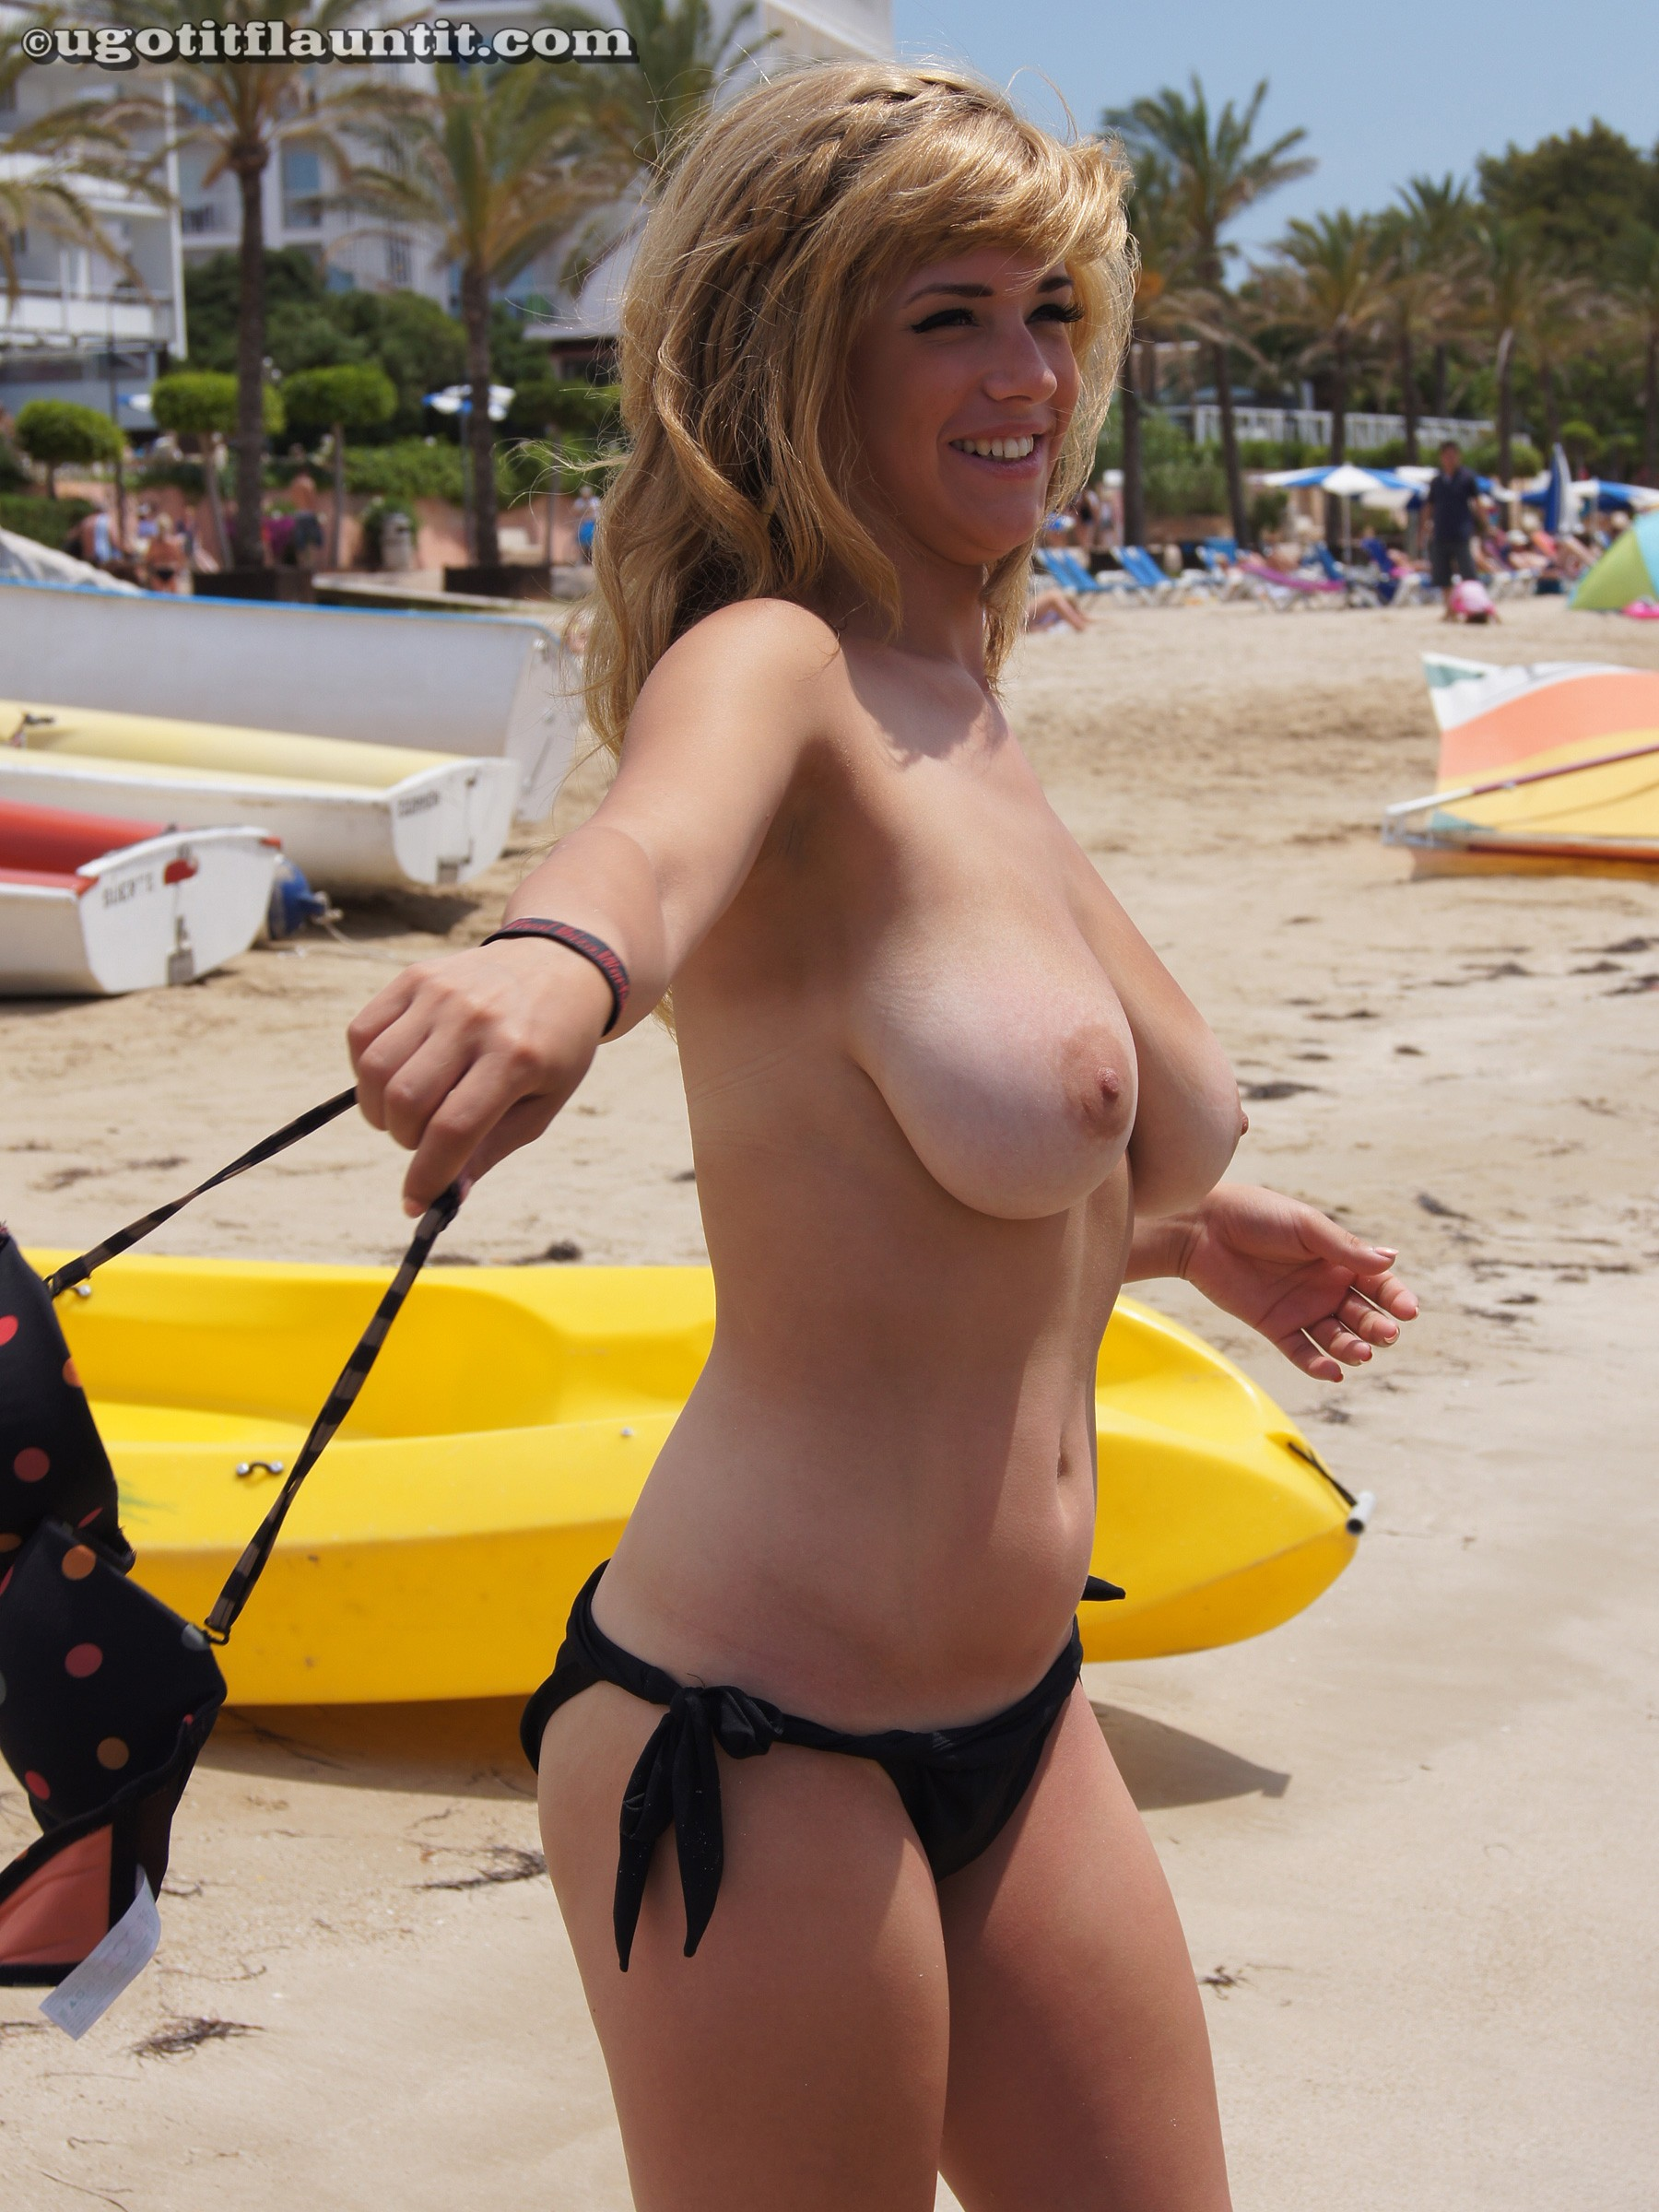 Women with huge natural tits showing them off in public